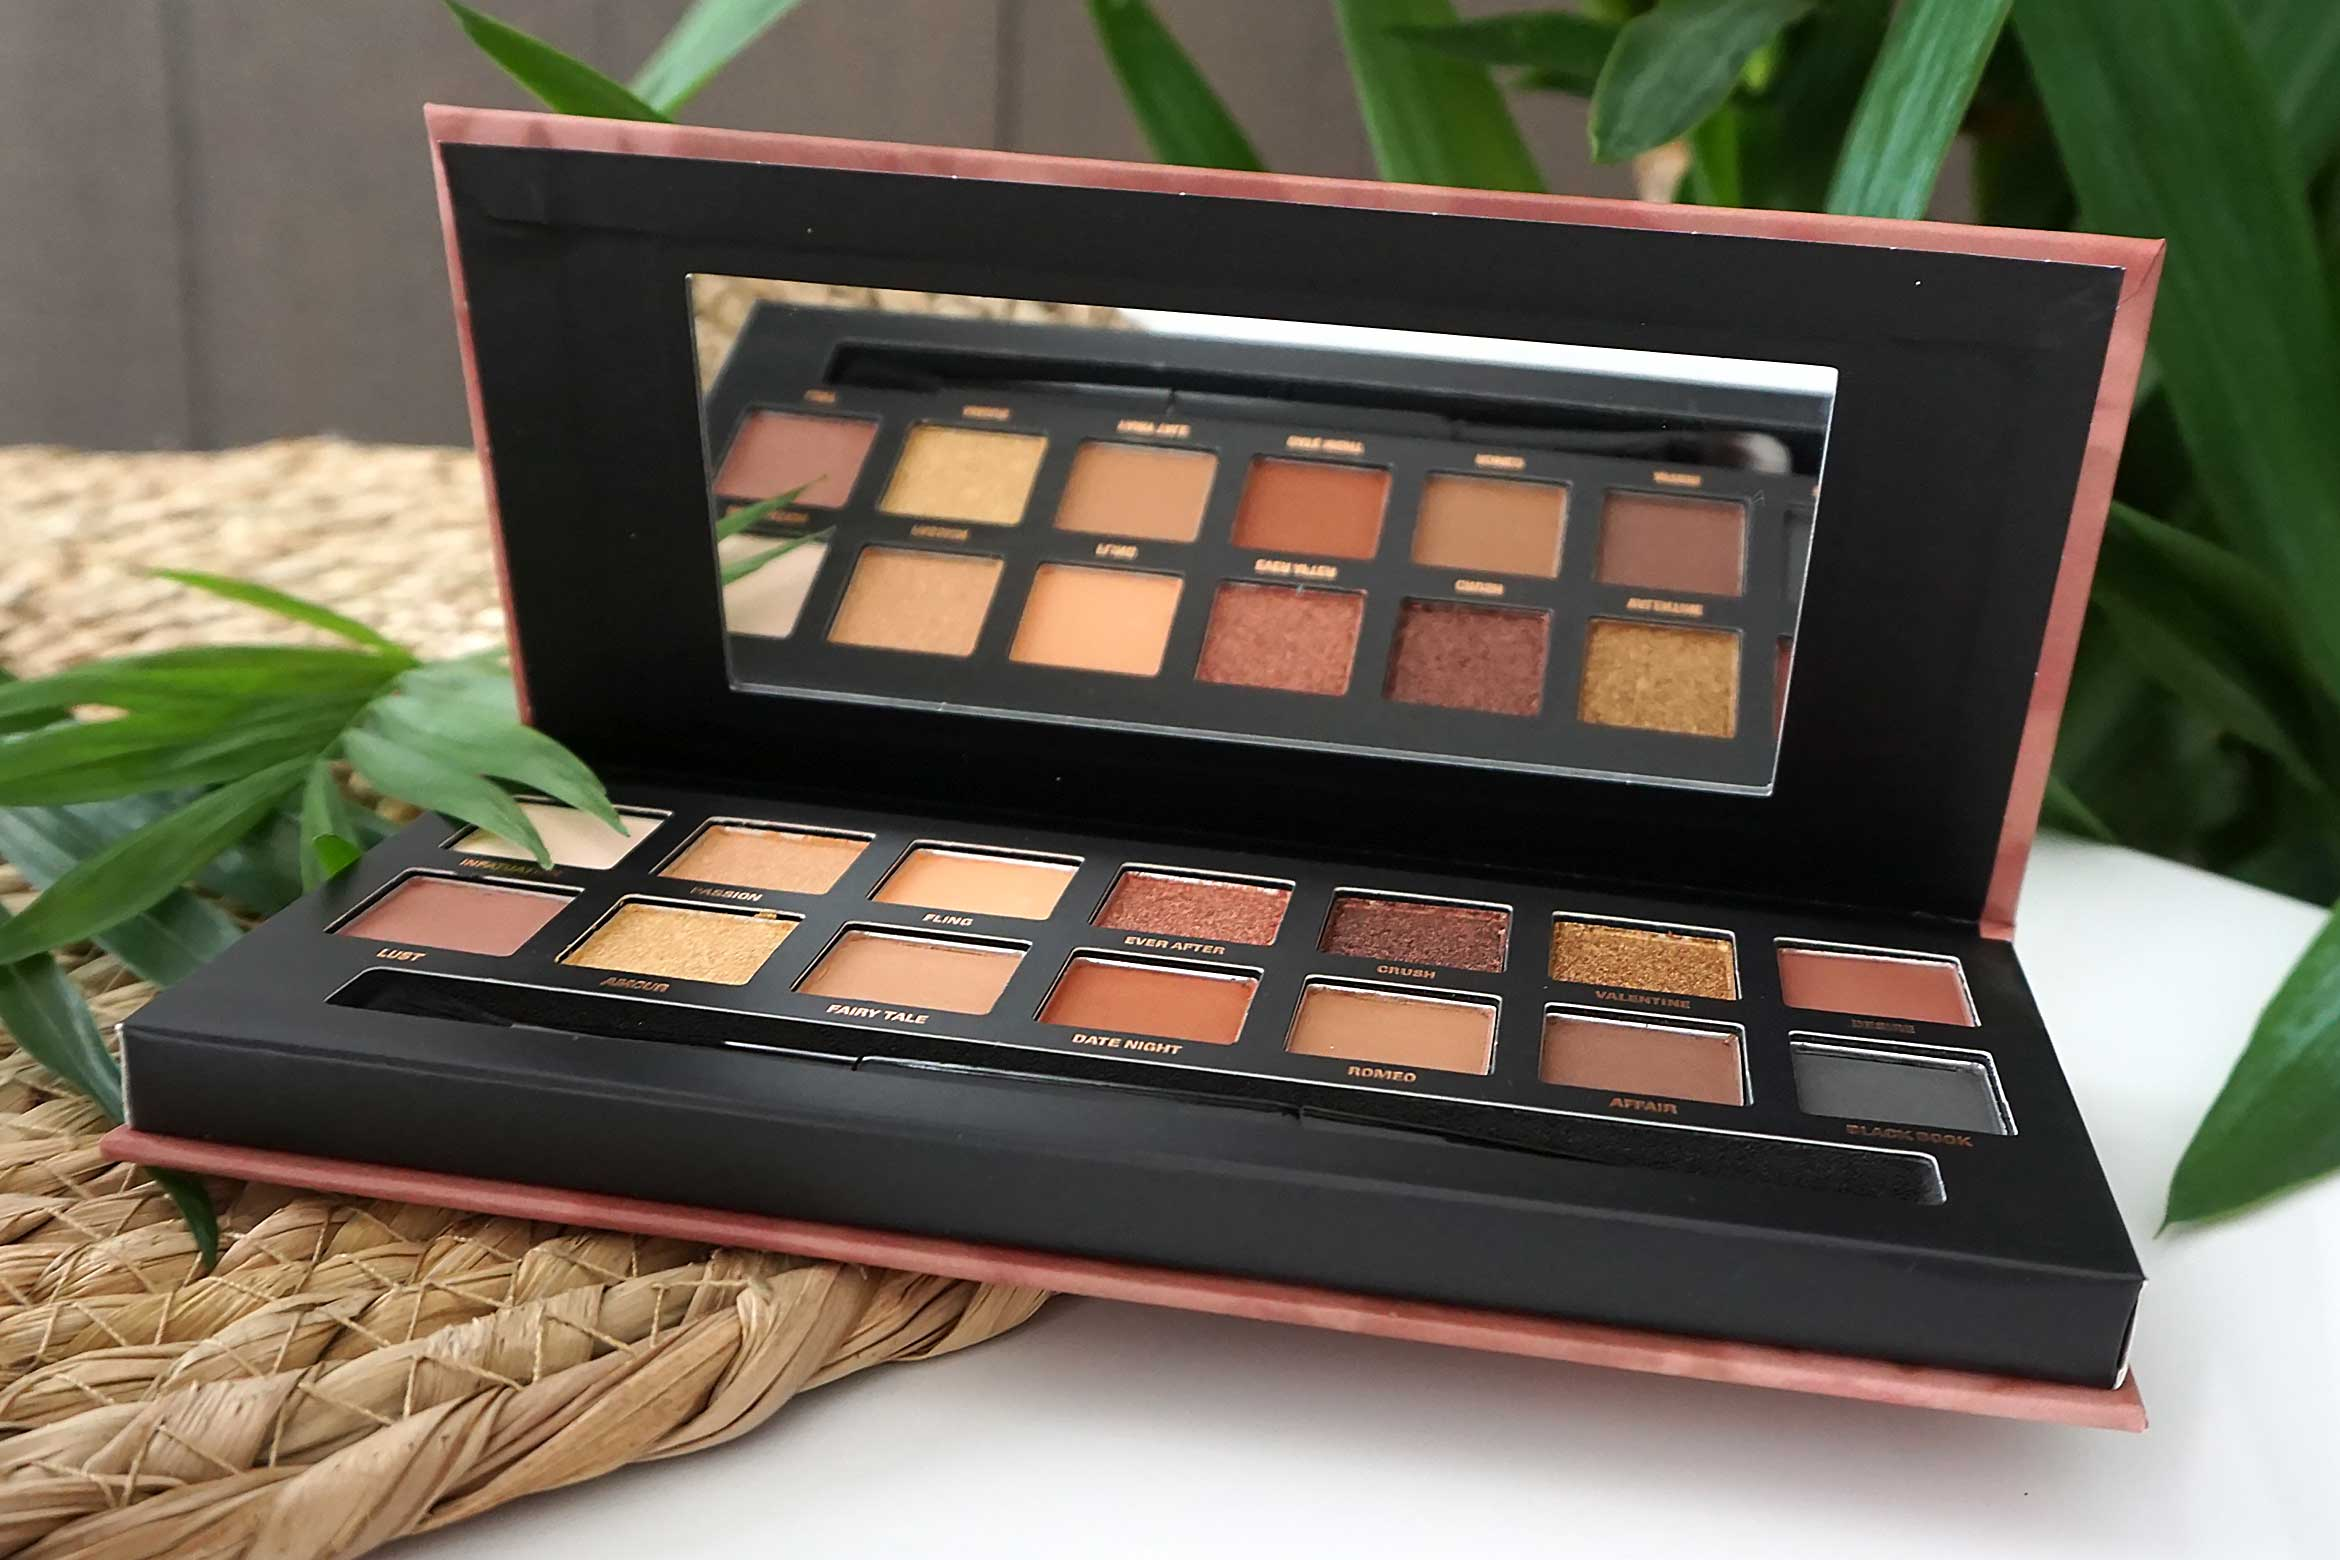 w7 romanced eyeshadow palette review-1